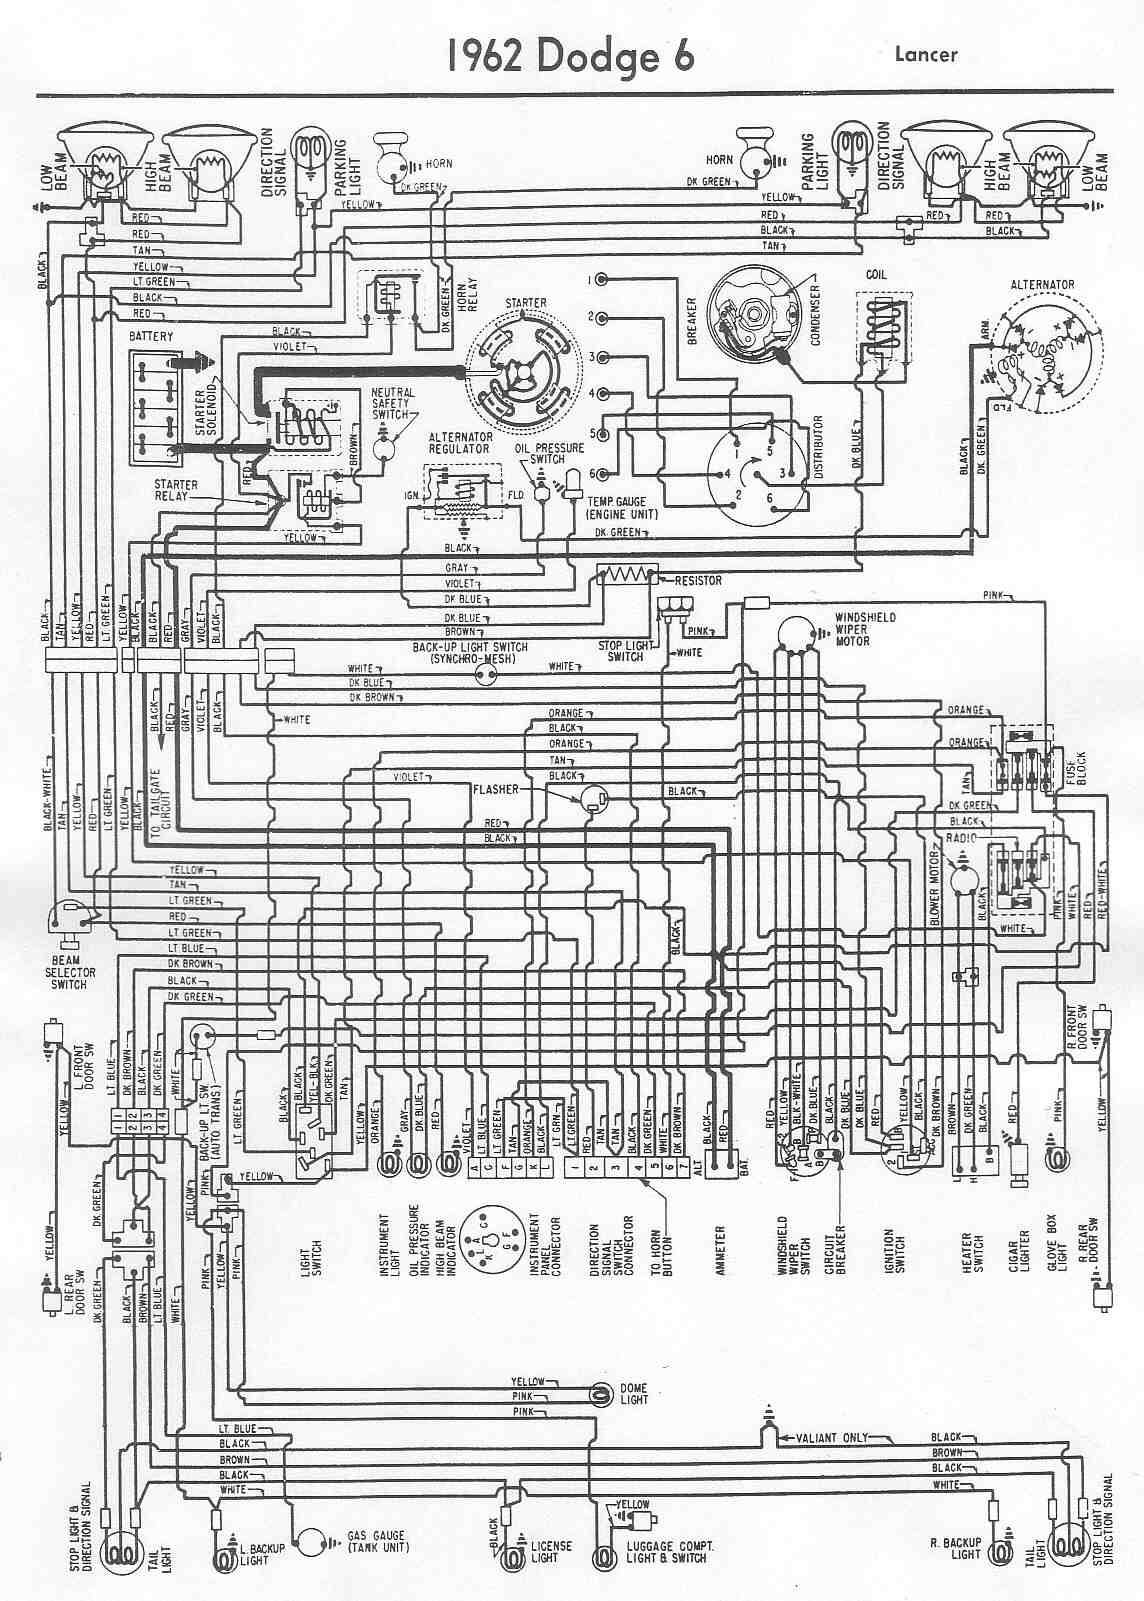 2003 Dodge Neon Wiring Diagram Light Schematic Diagrams Sign Schematics 1996 Dakota